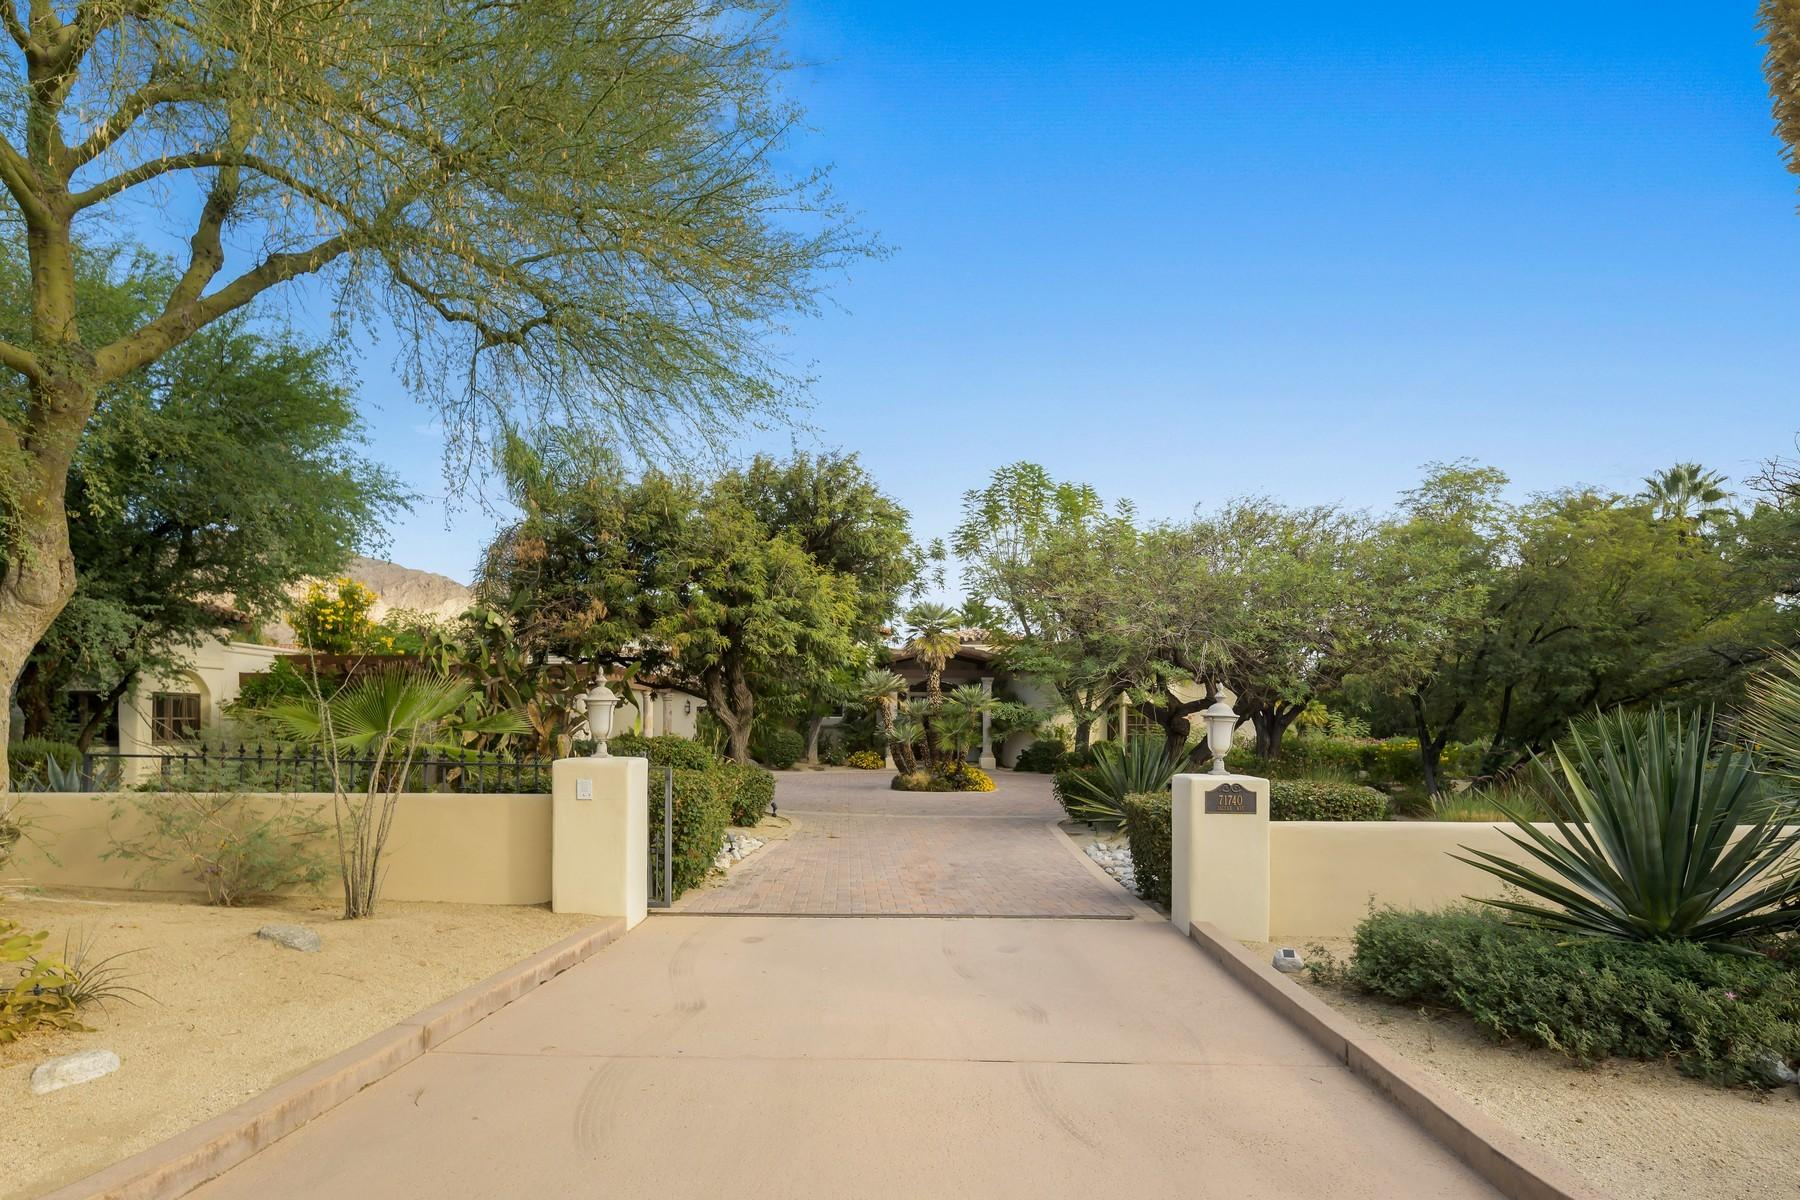 71740 Jaguar Way, Palm Desert, California 92260, 4 Bedrooms Bedrooms, ,5 BathroomsBathrooms,Residential,For Sale,71740 Jaguar Way,219032317